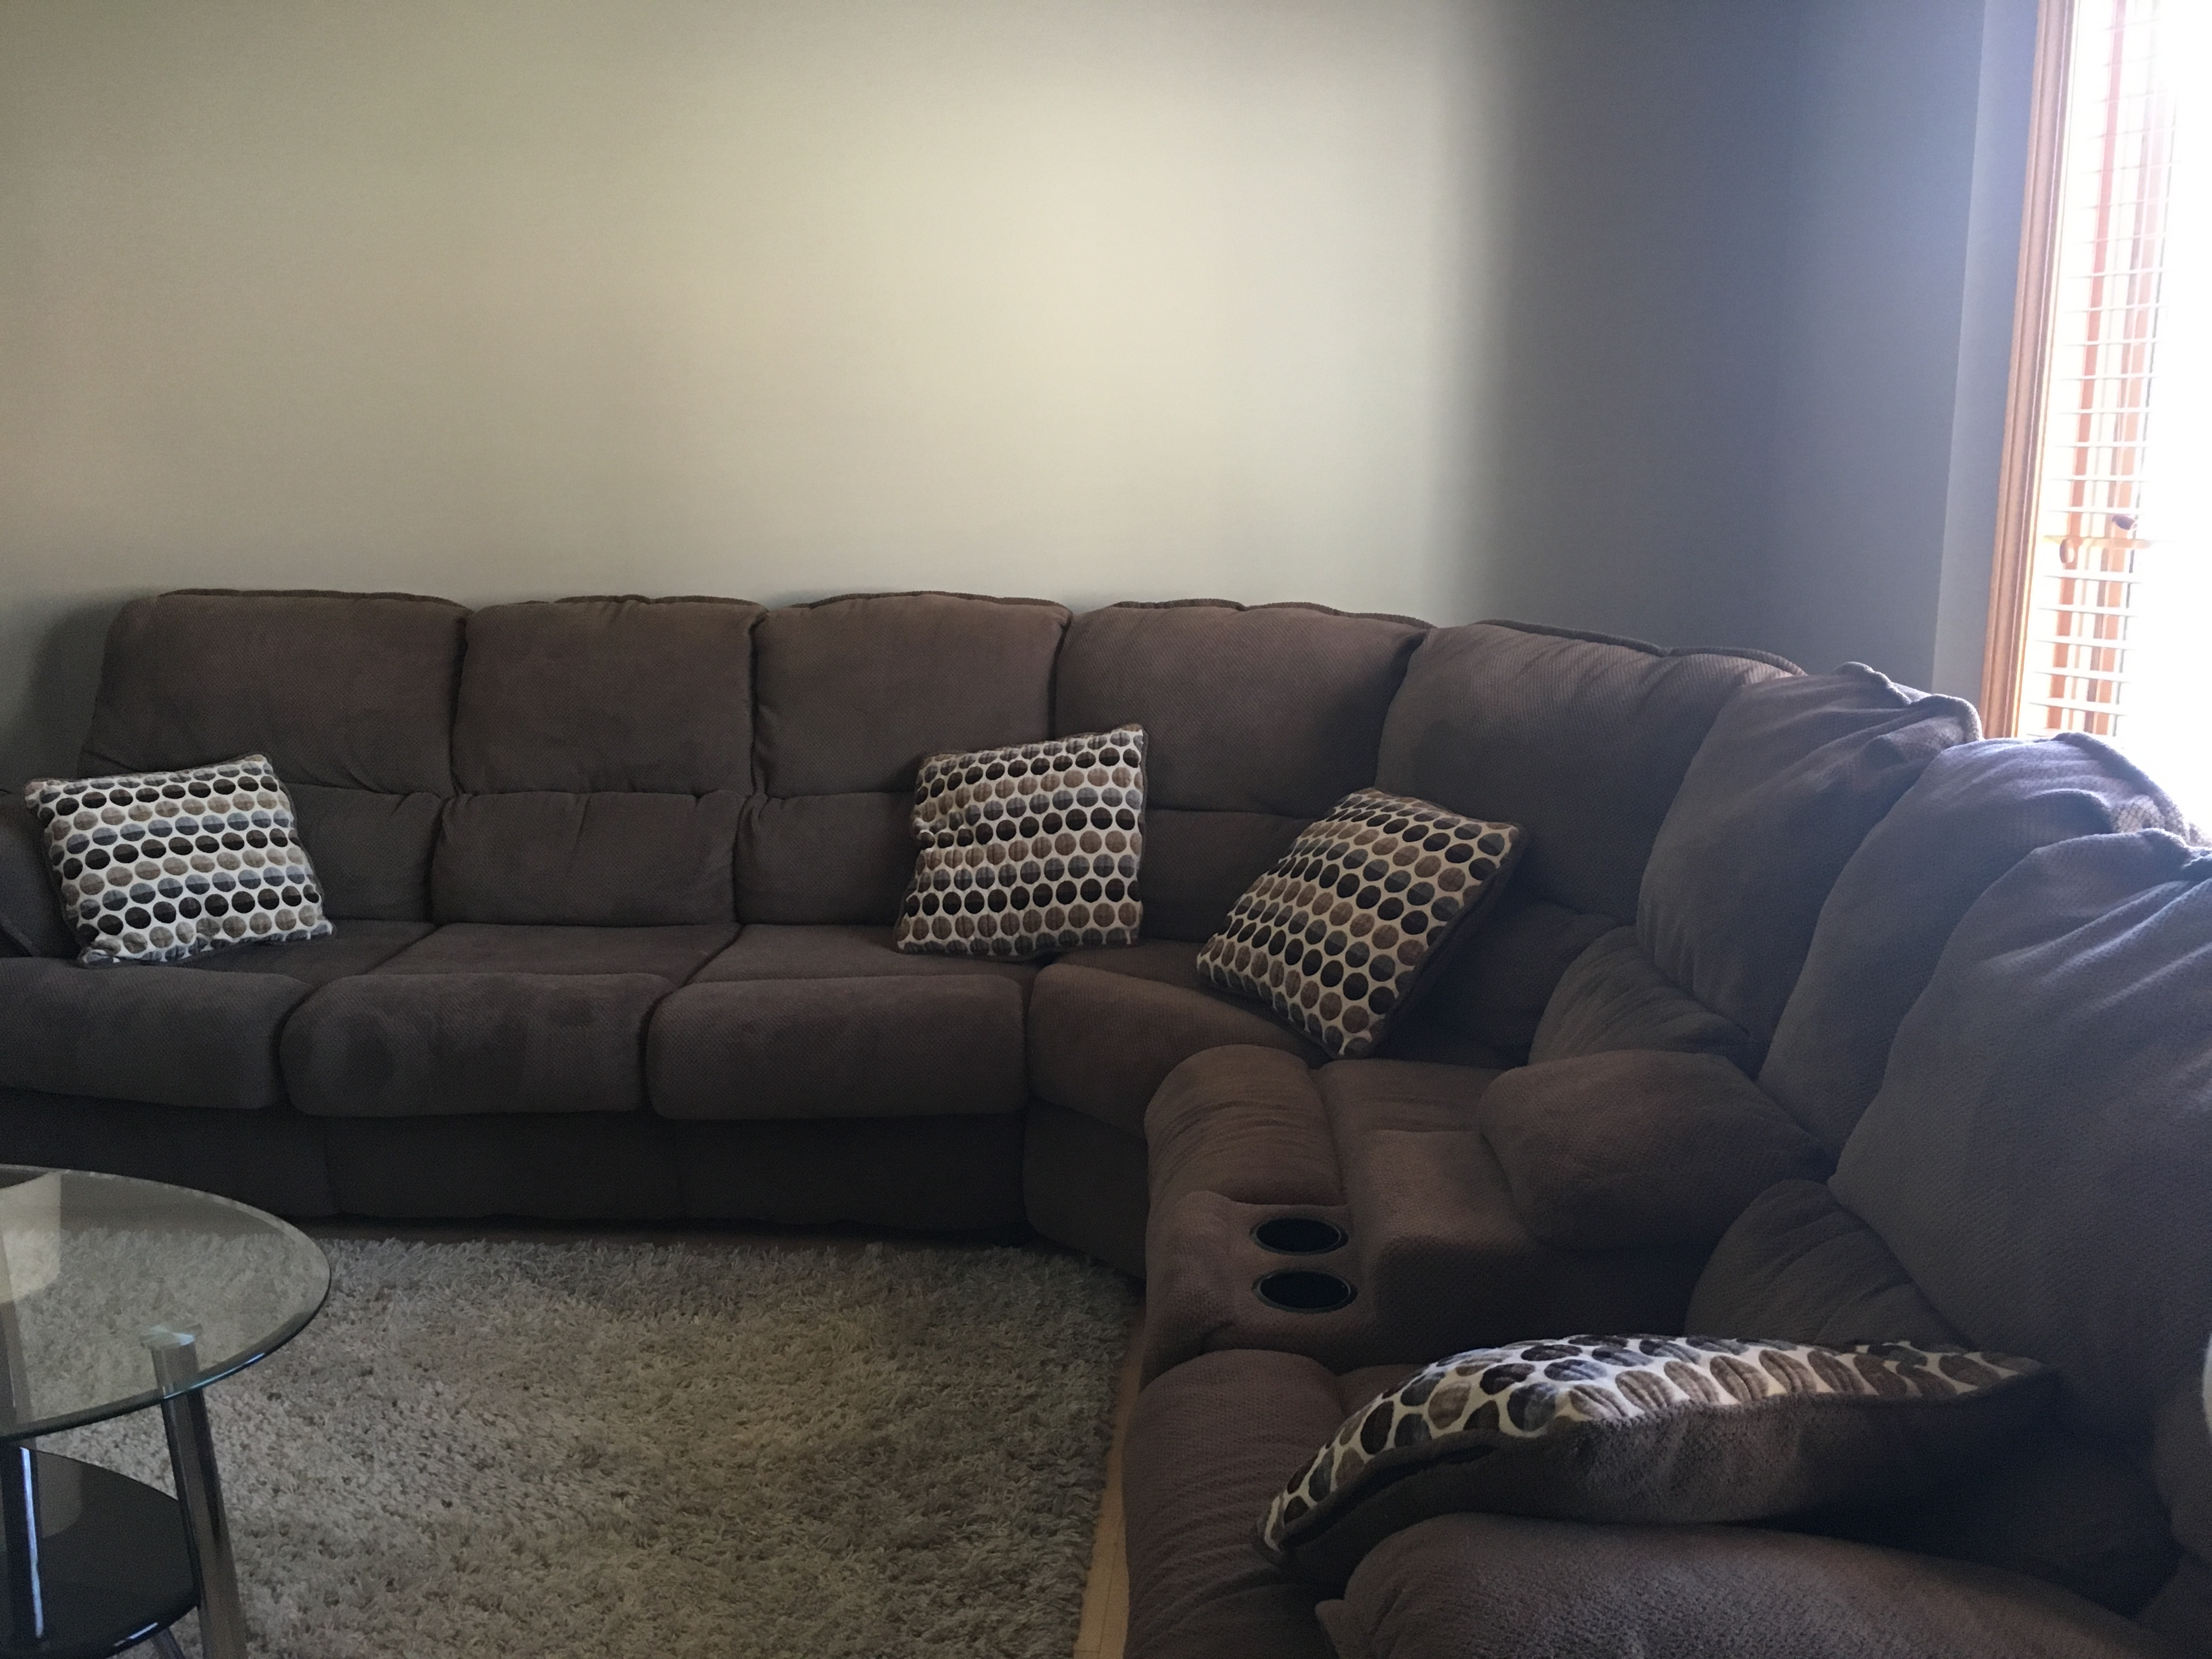 Sectional with sofa bed and recliners